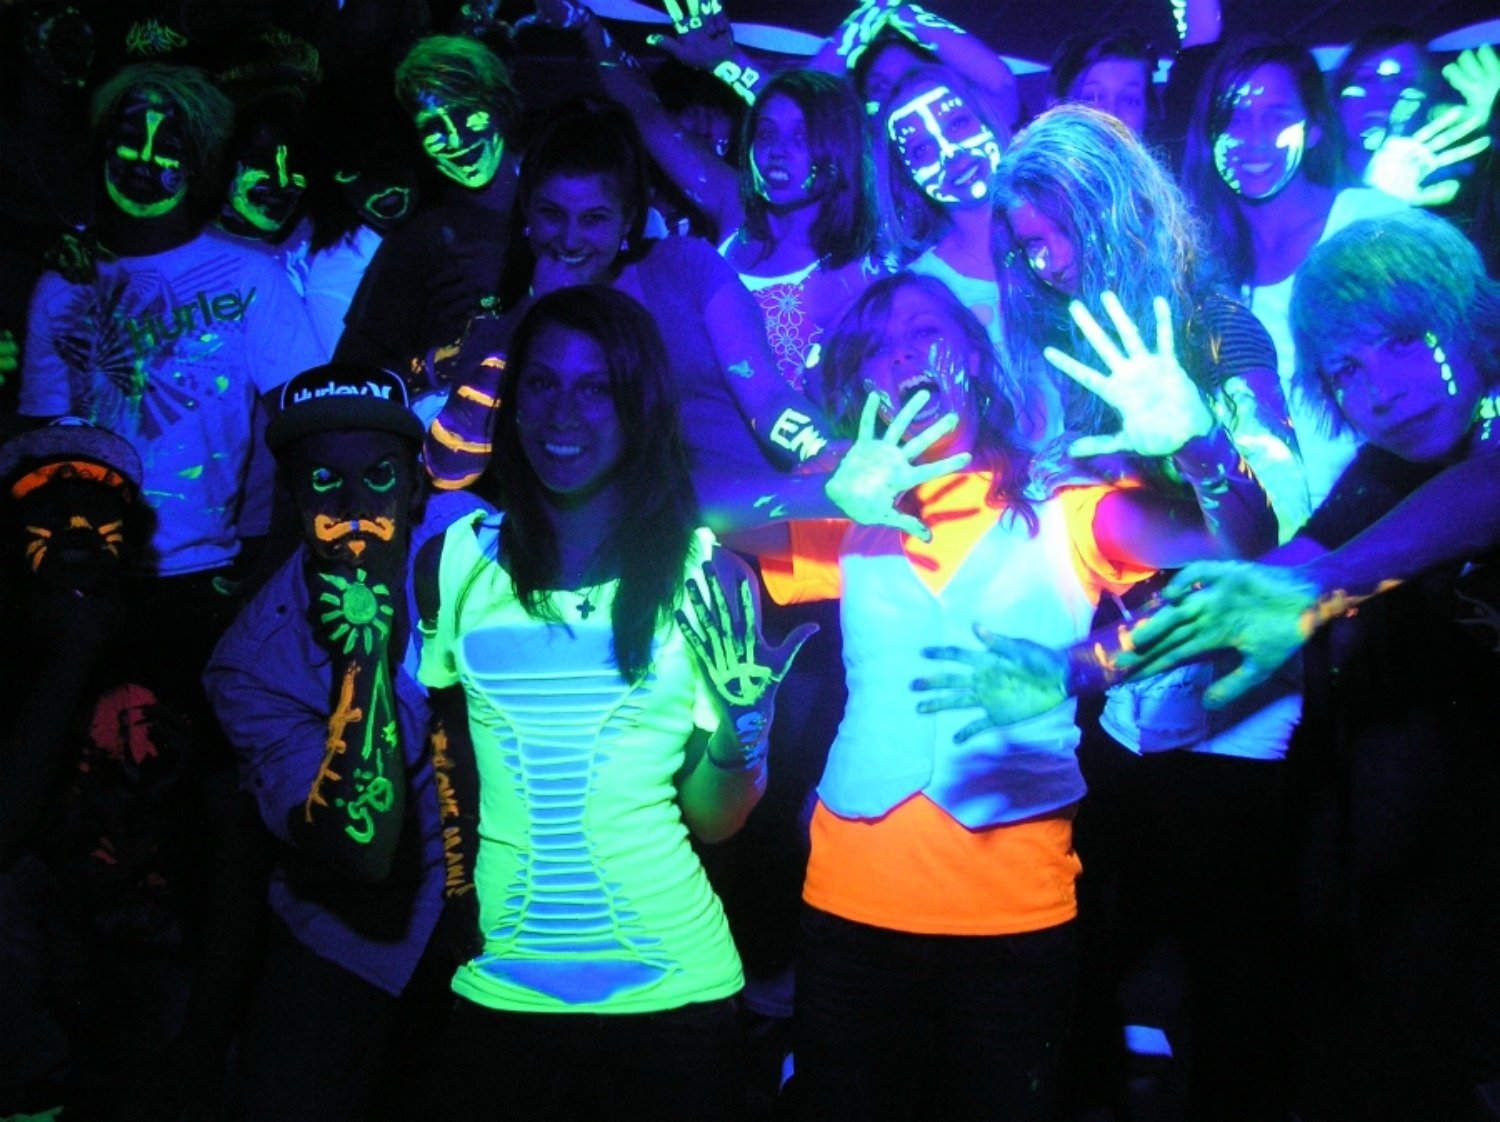 10 Fantastic Glow In The Dark Costume Ideas black light party outfit ideas outfit ideas hq 4